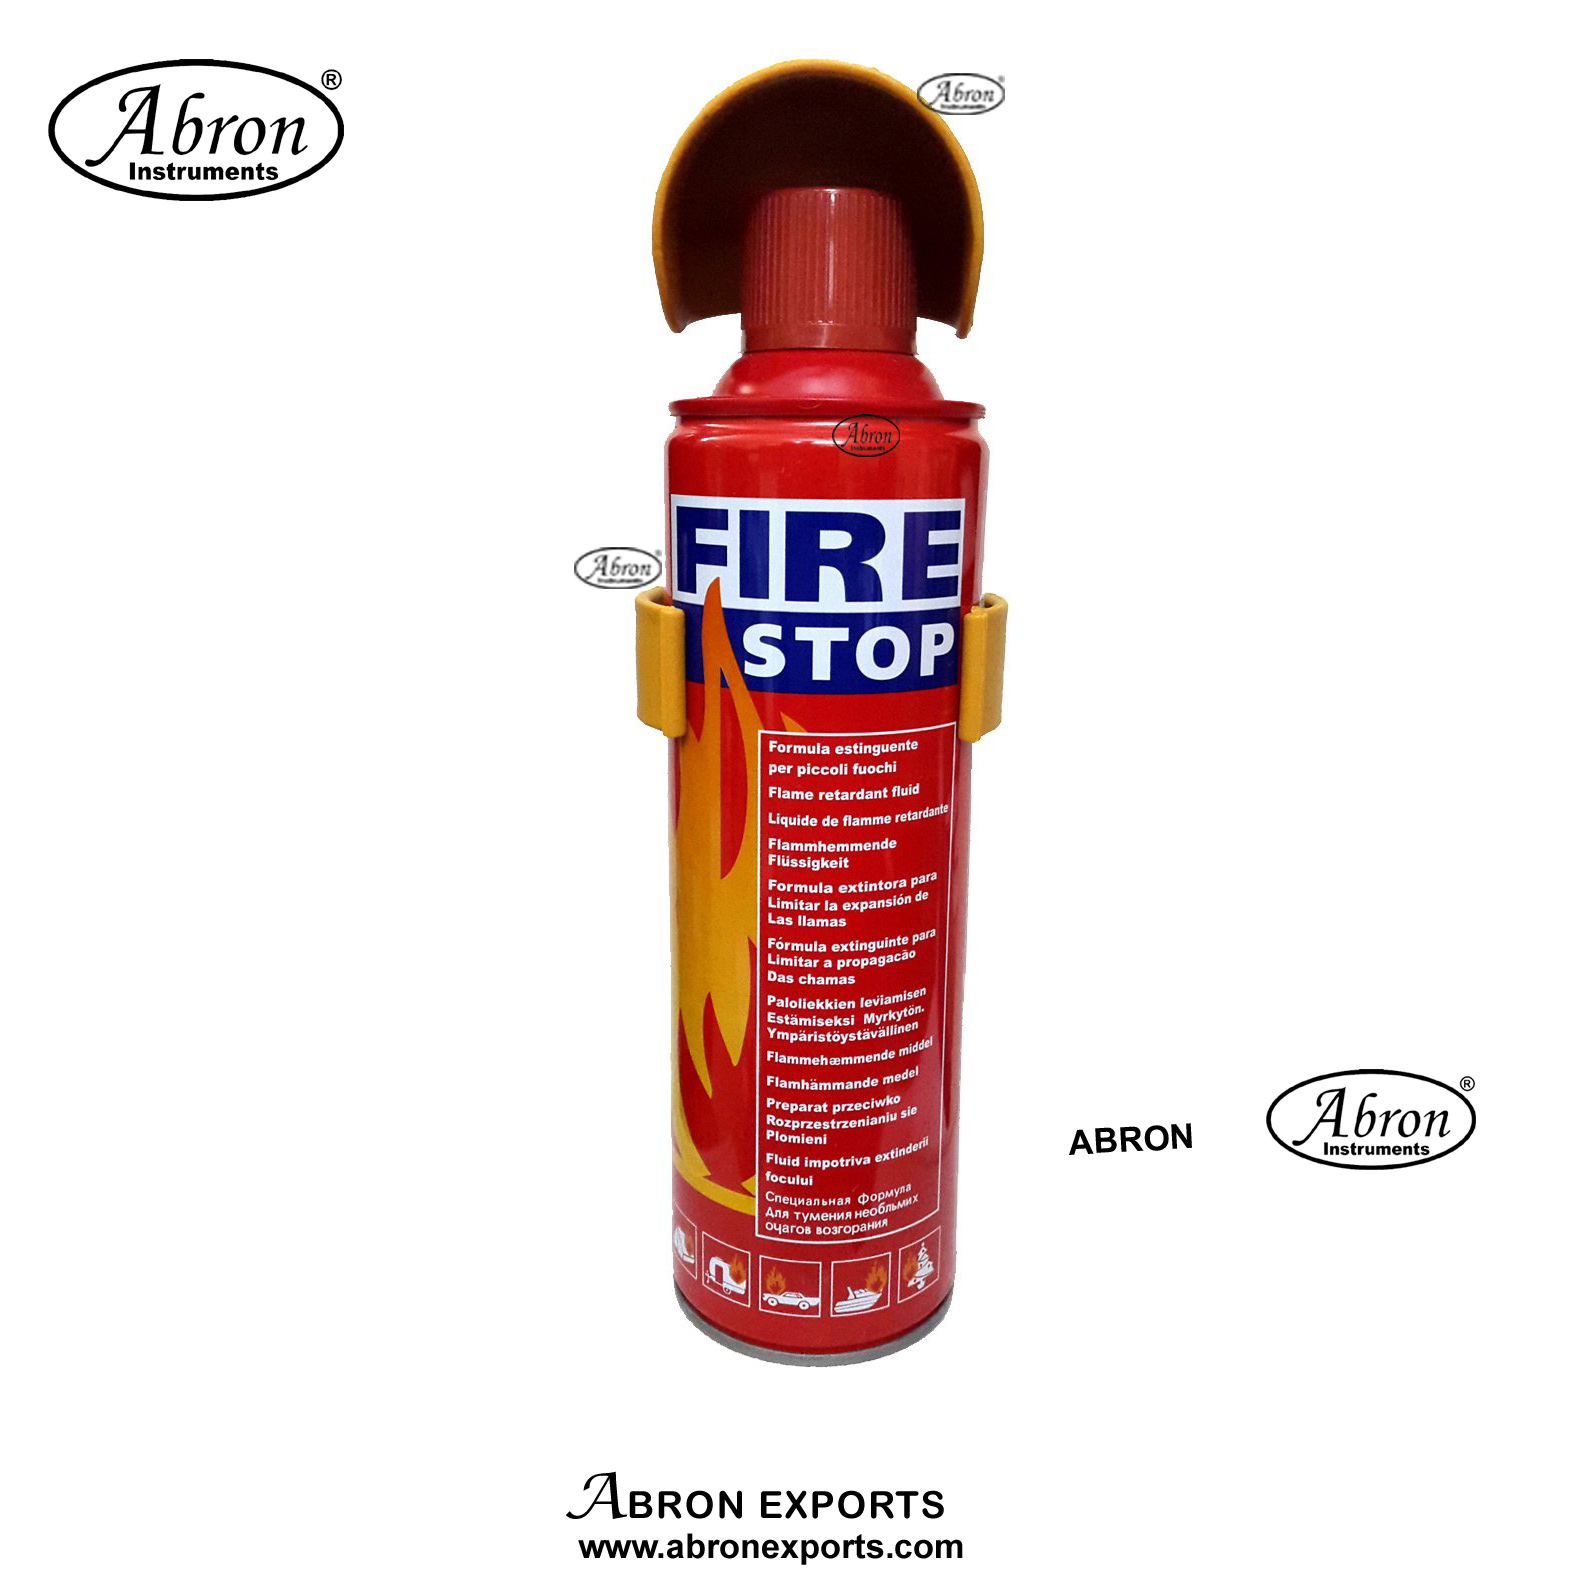 Fire extinguisher 400ml AB forcar small uses lab table with pressure press down button wall hanging clamp abron2 GA-008G